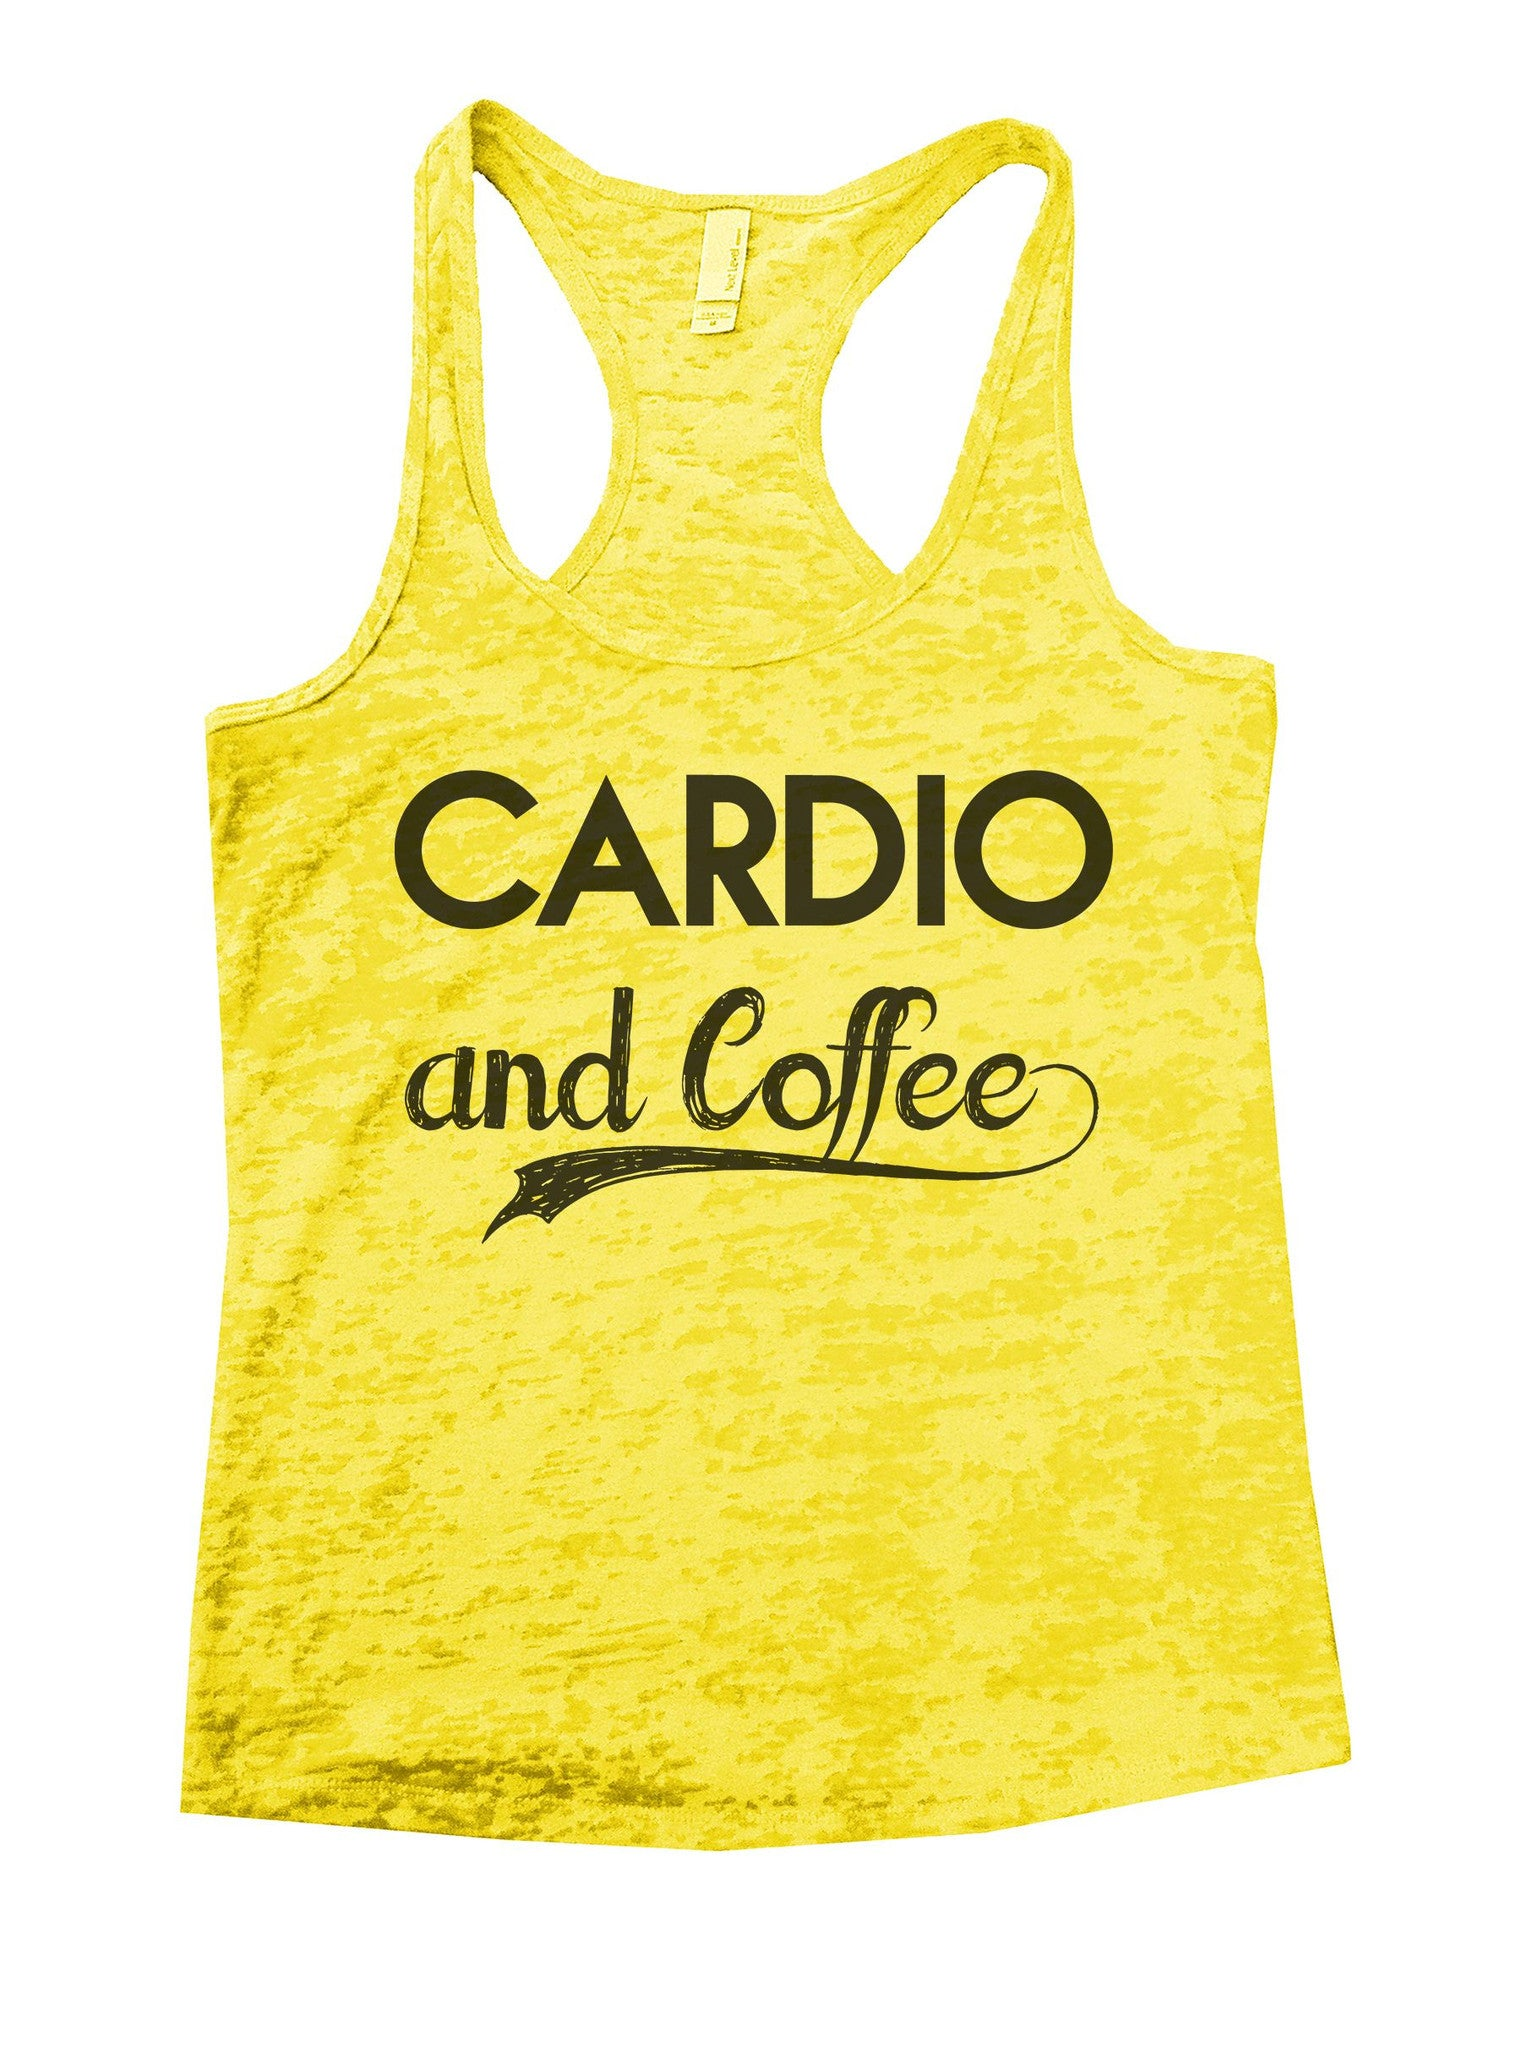 Cardio And Coffee Burnout Tank Top By BurnoutTankTops.com - 797 - Funny Shirts Tank Tops Burnouts and Triblends  - 7